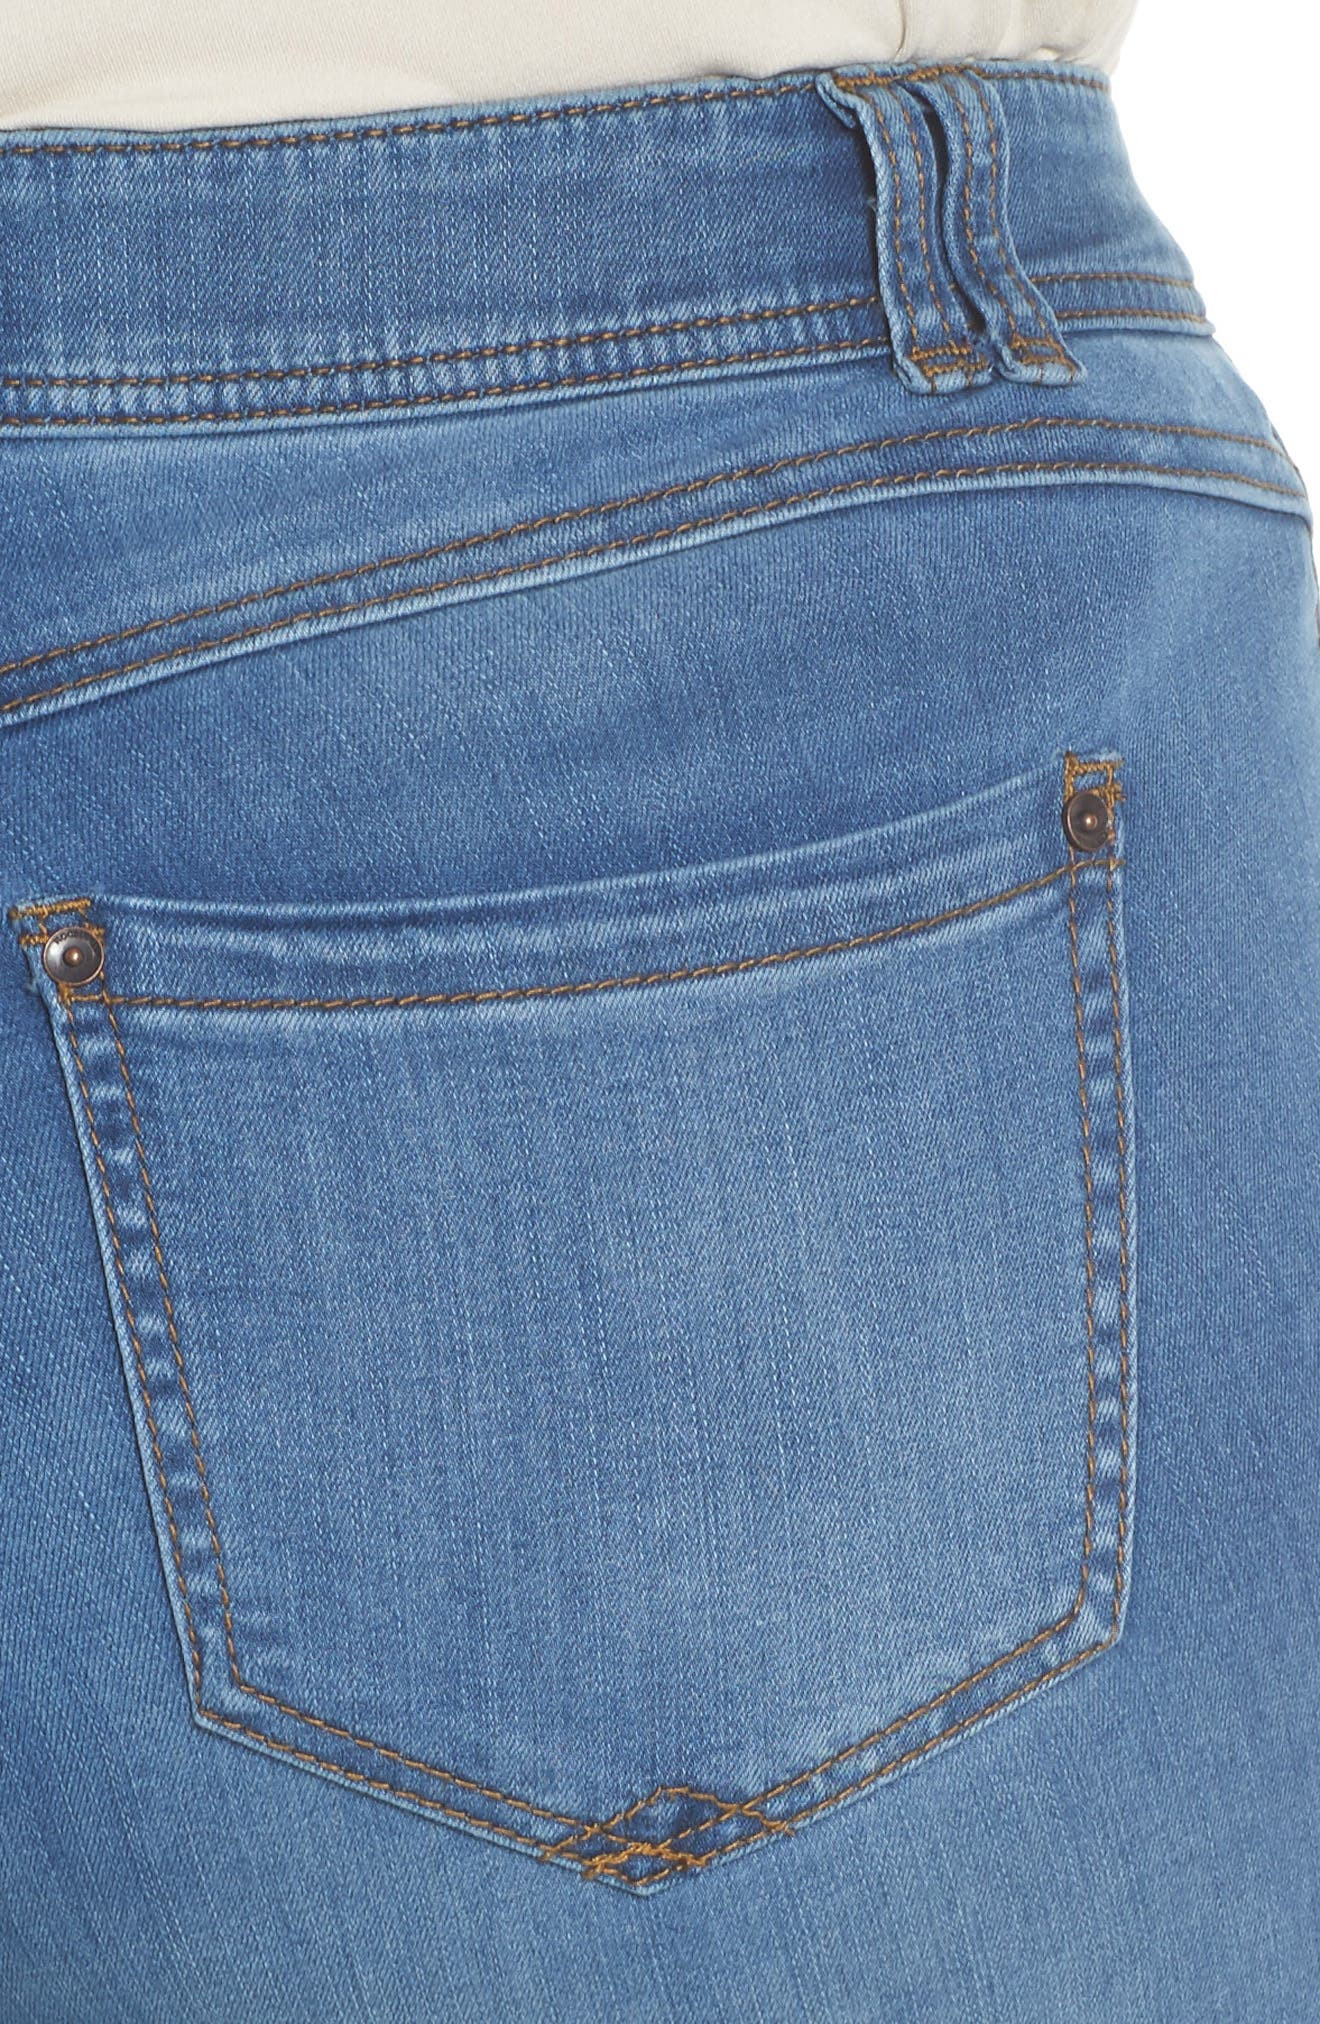 Ab-solution Luxe Touch Bootcut Jeans,                             Alternate thumbnail 4, color,